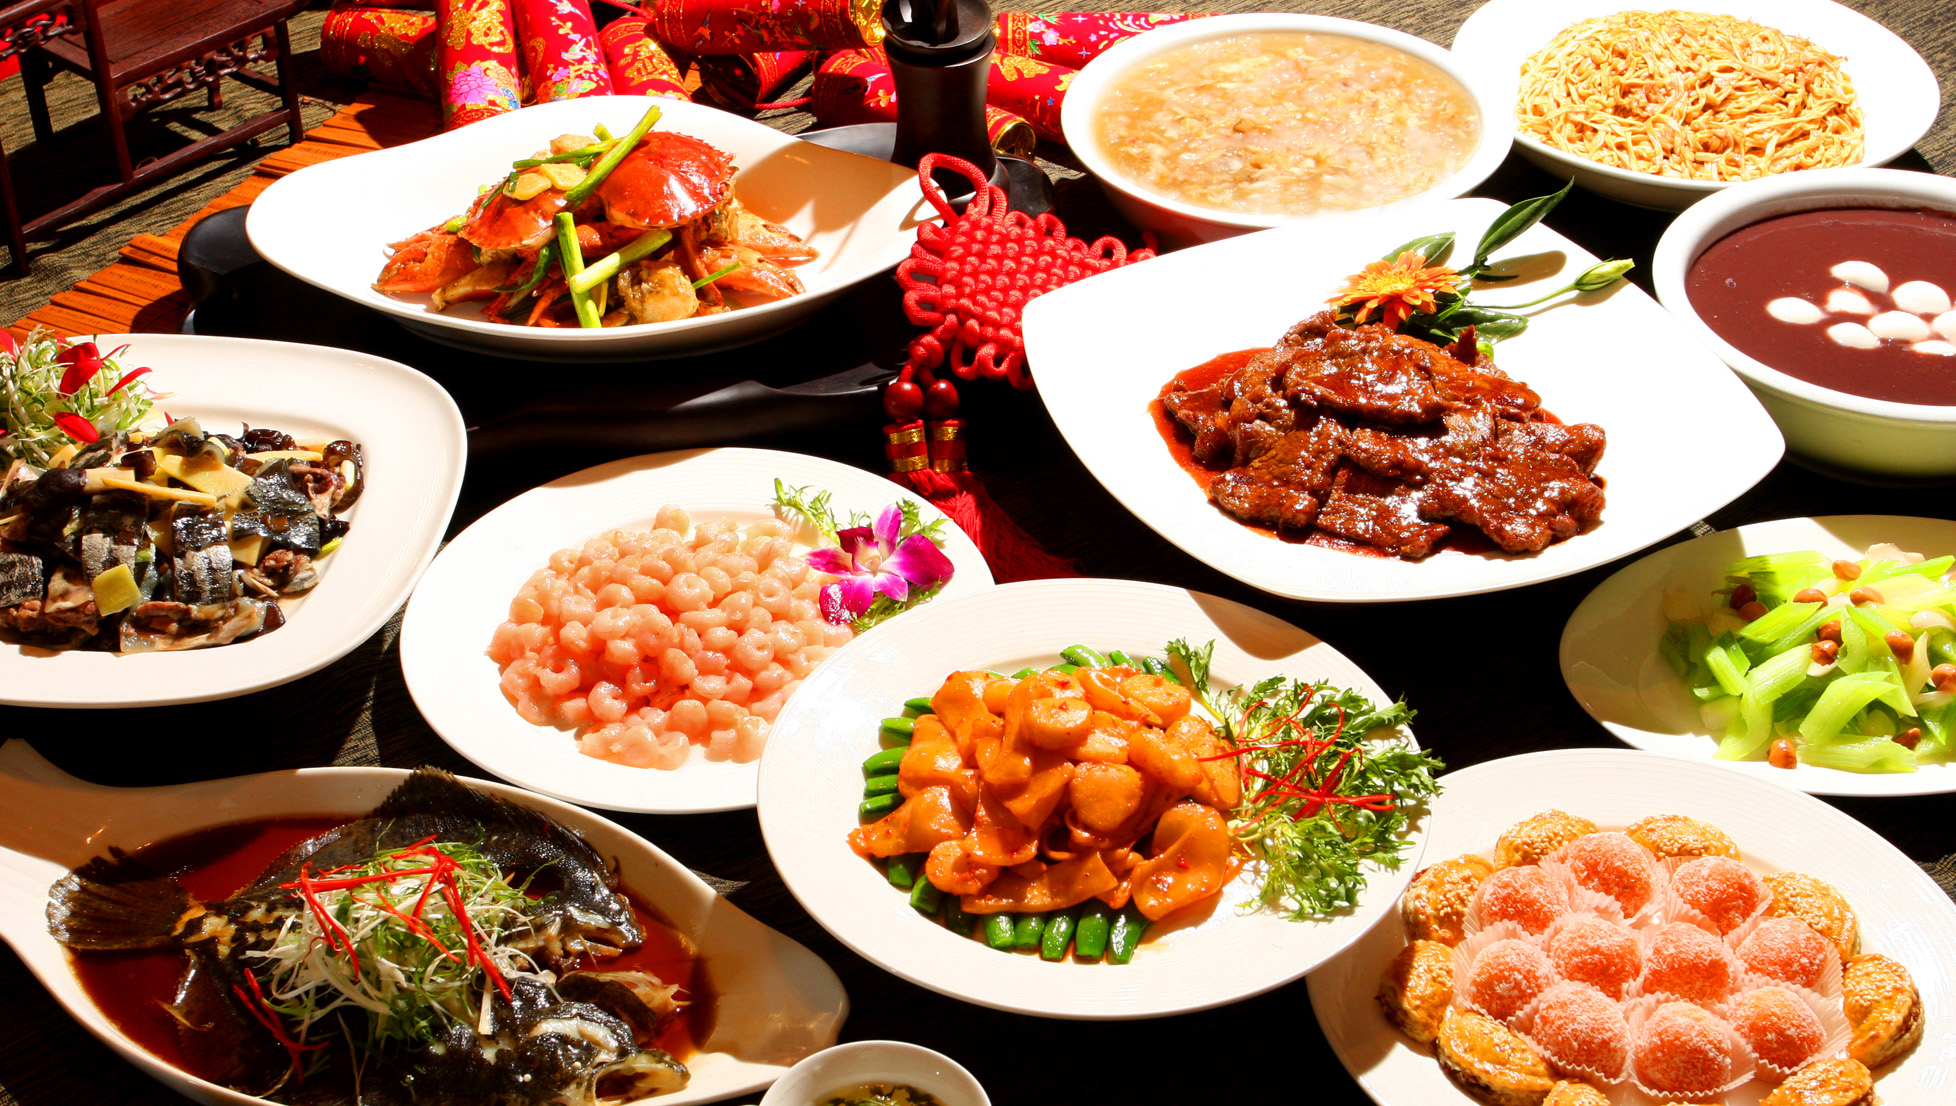 Marvelous Chinese Dinner Party Ideas Part - 11: New Year Party Ideas 04